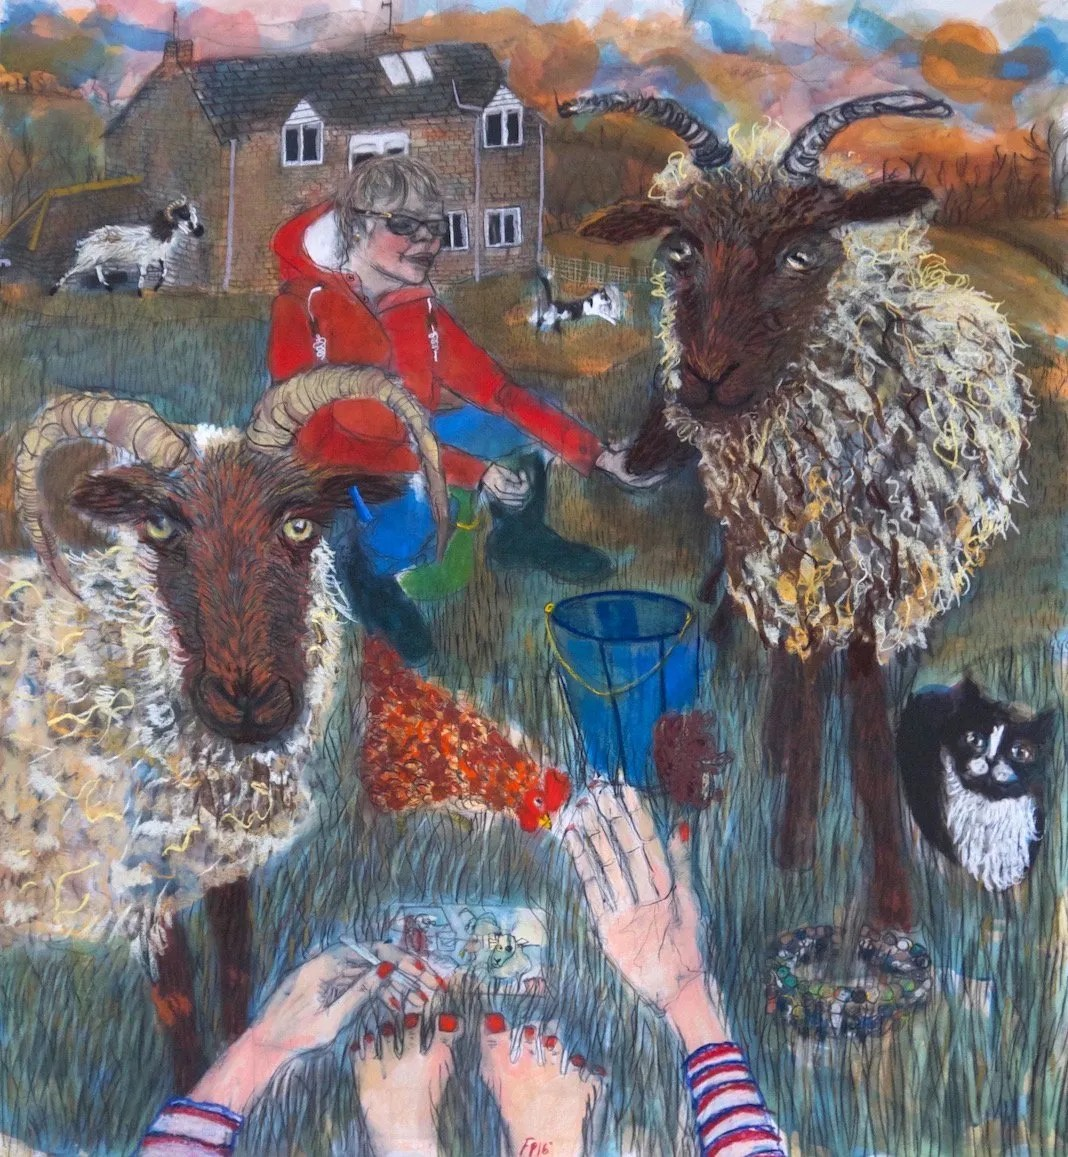 Alice joint owner of Sheepfold, member of Woolclip, and Manx Loaghtan sheep breeder, 128 x 138 cm, Conte and Ink on Paper